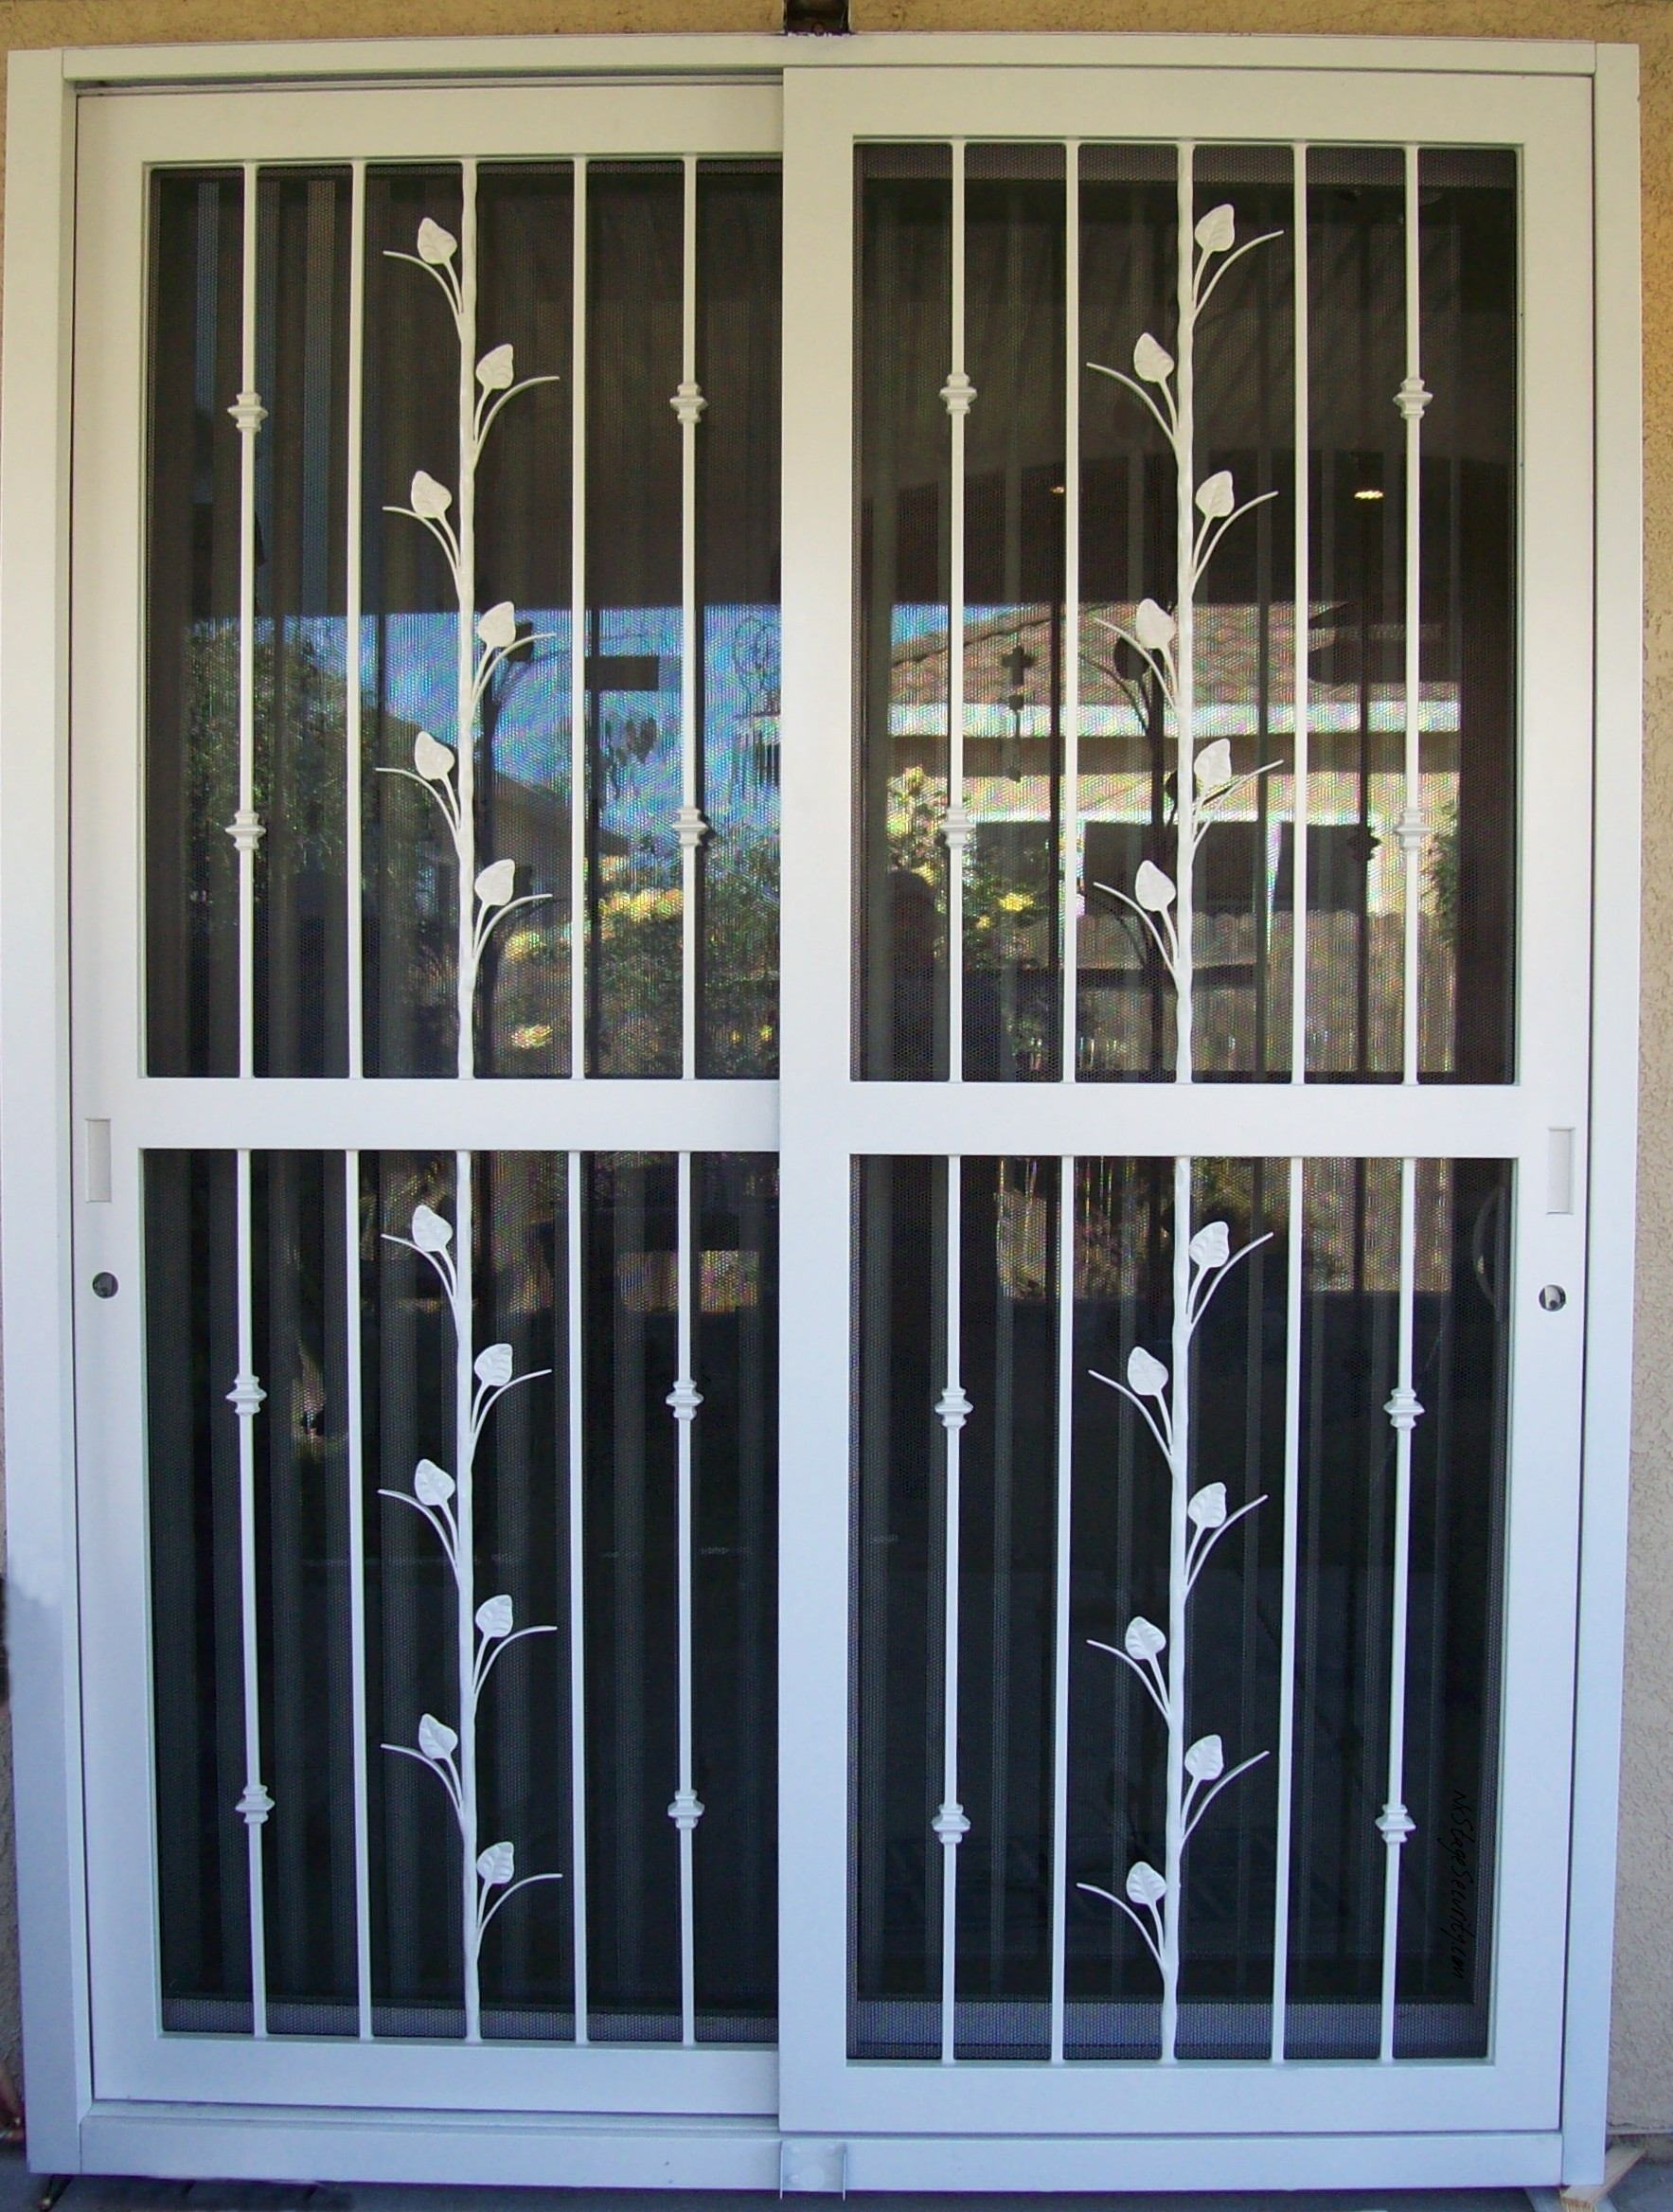 The Breeze Sliding Door Security GateThe Breeze Sliding Door Security Gate